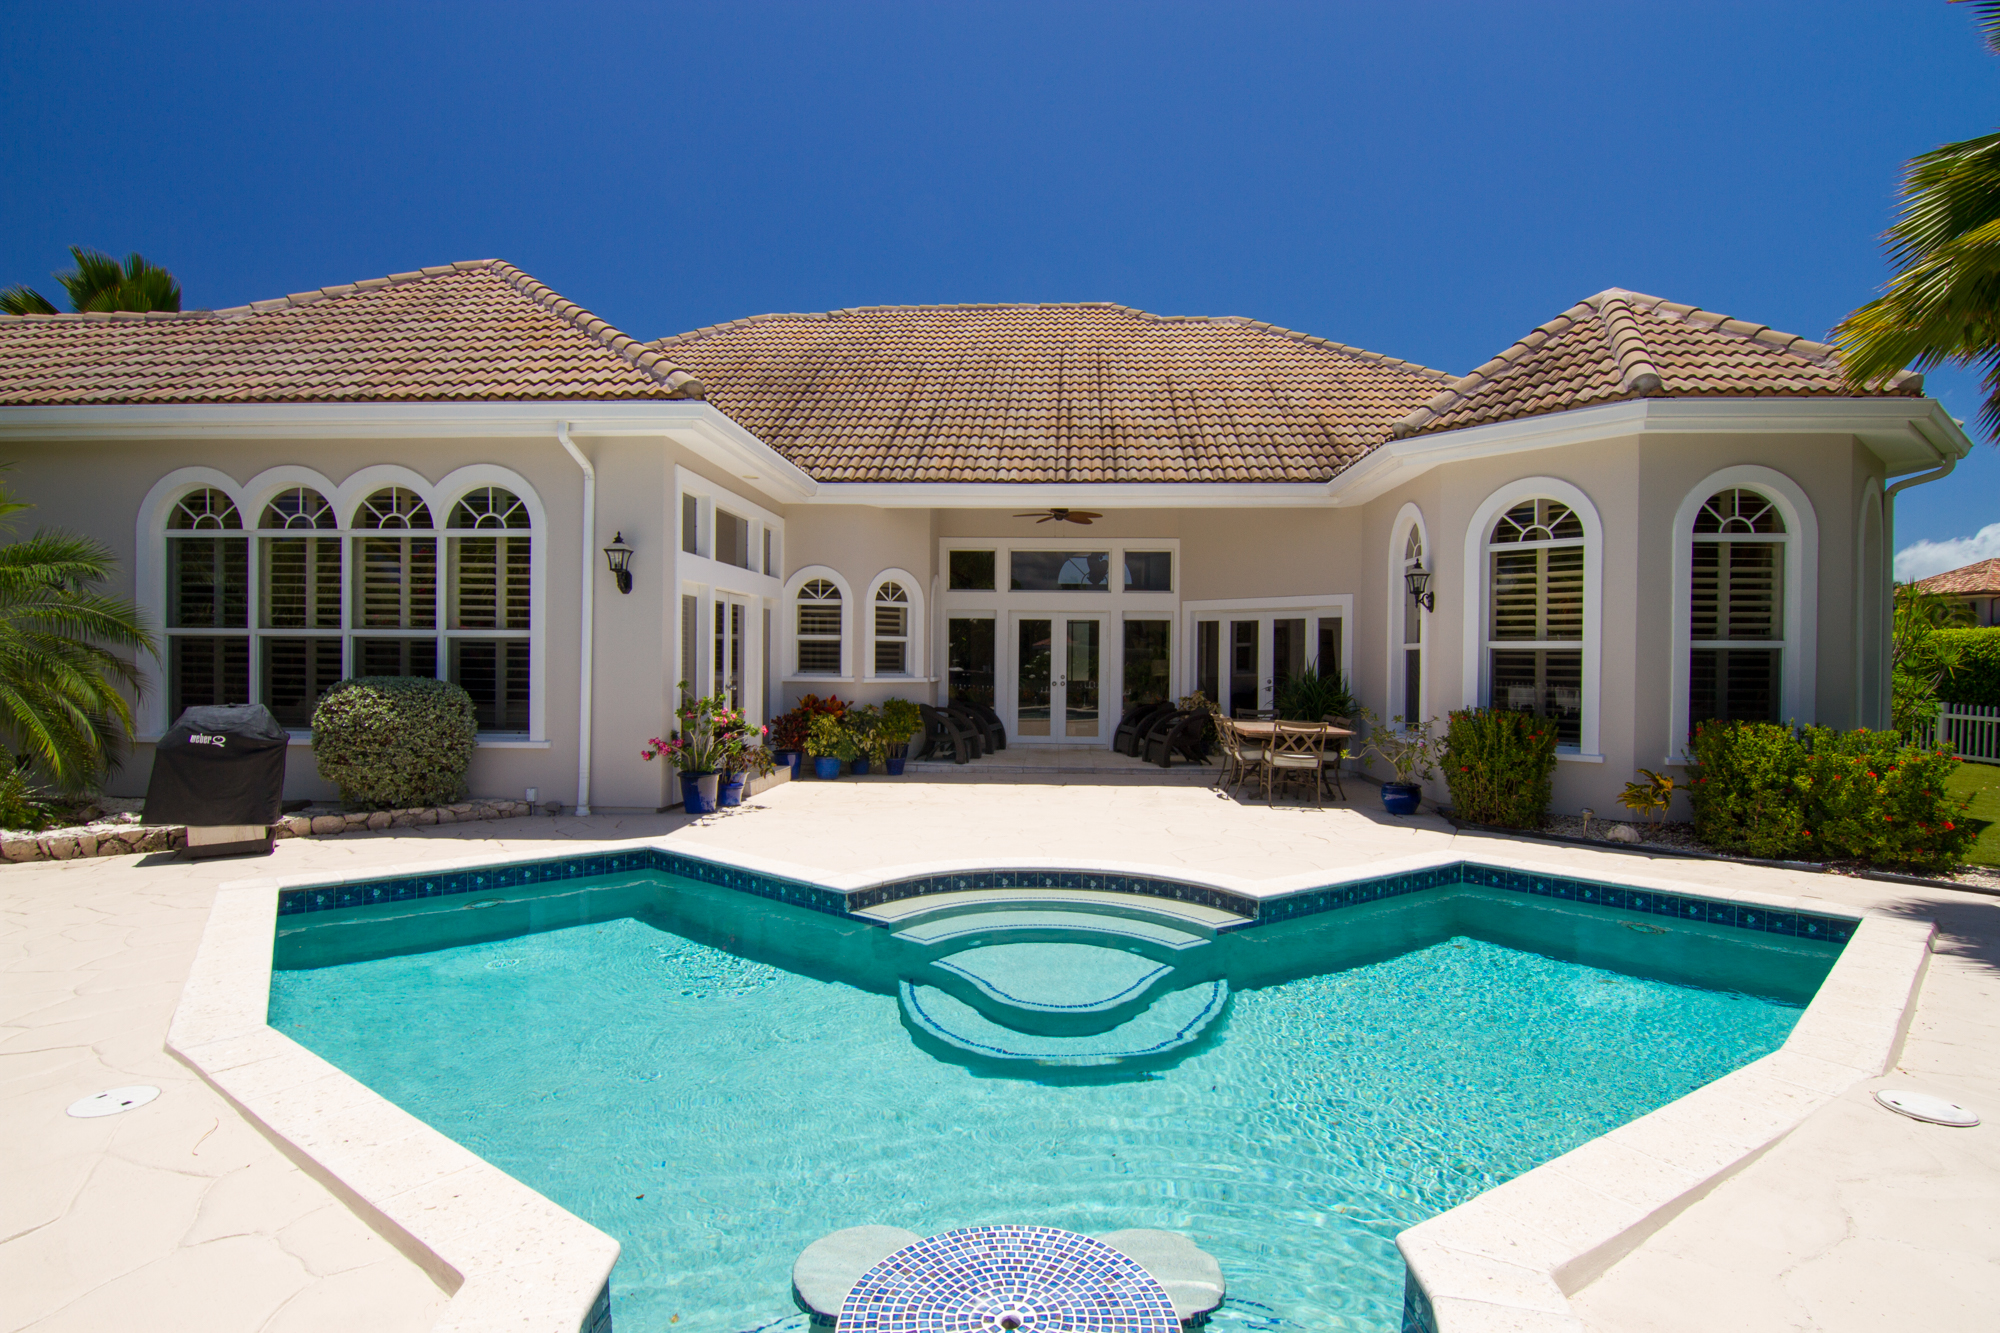 Single Family Home for Sale at Villa Paradiso Crystal Dr Crystal Harbour, KY1 Cayman Islands